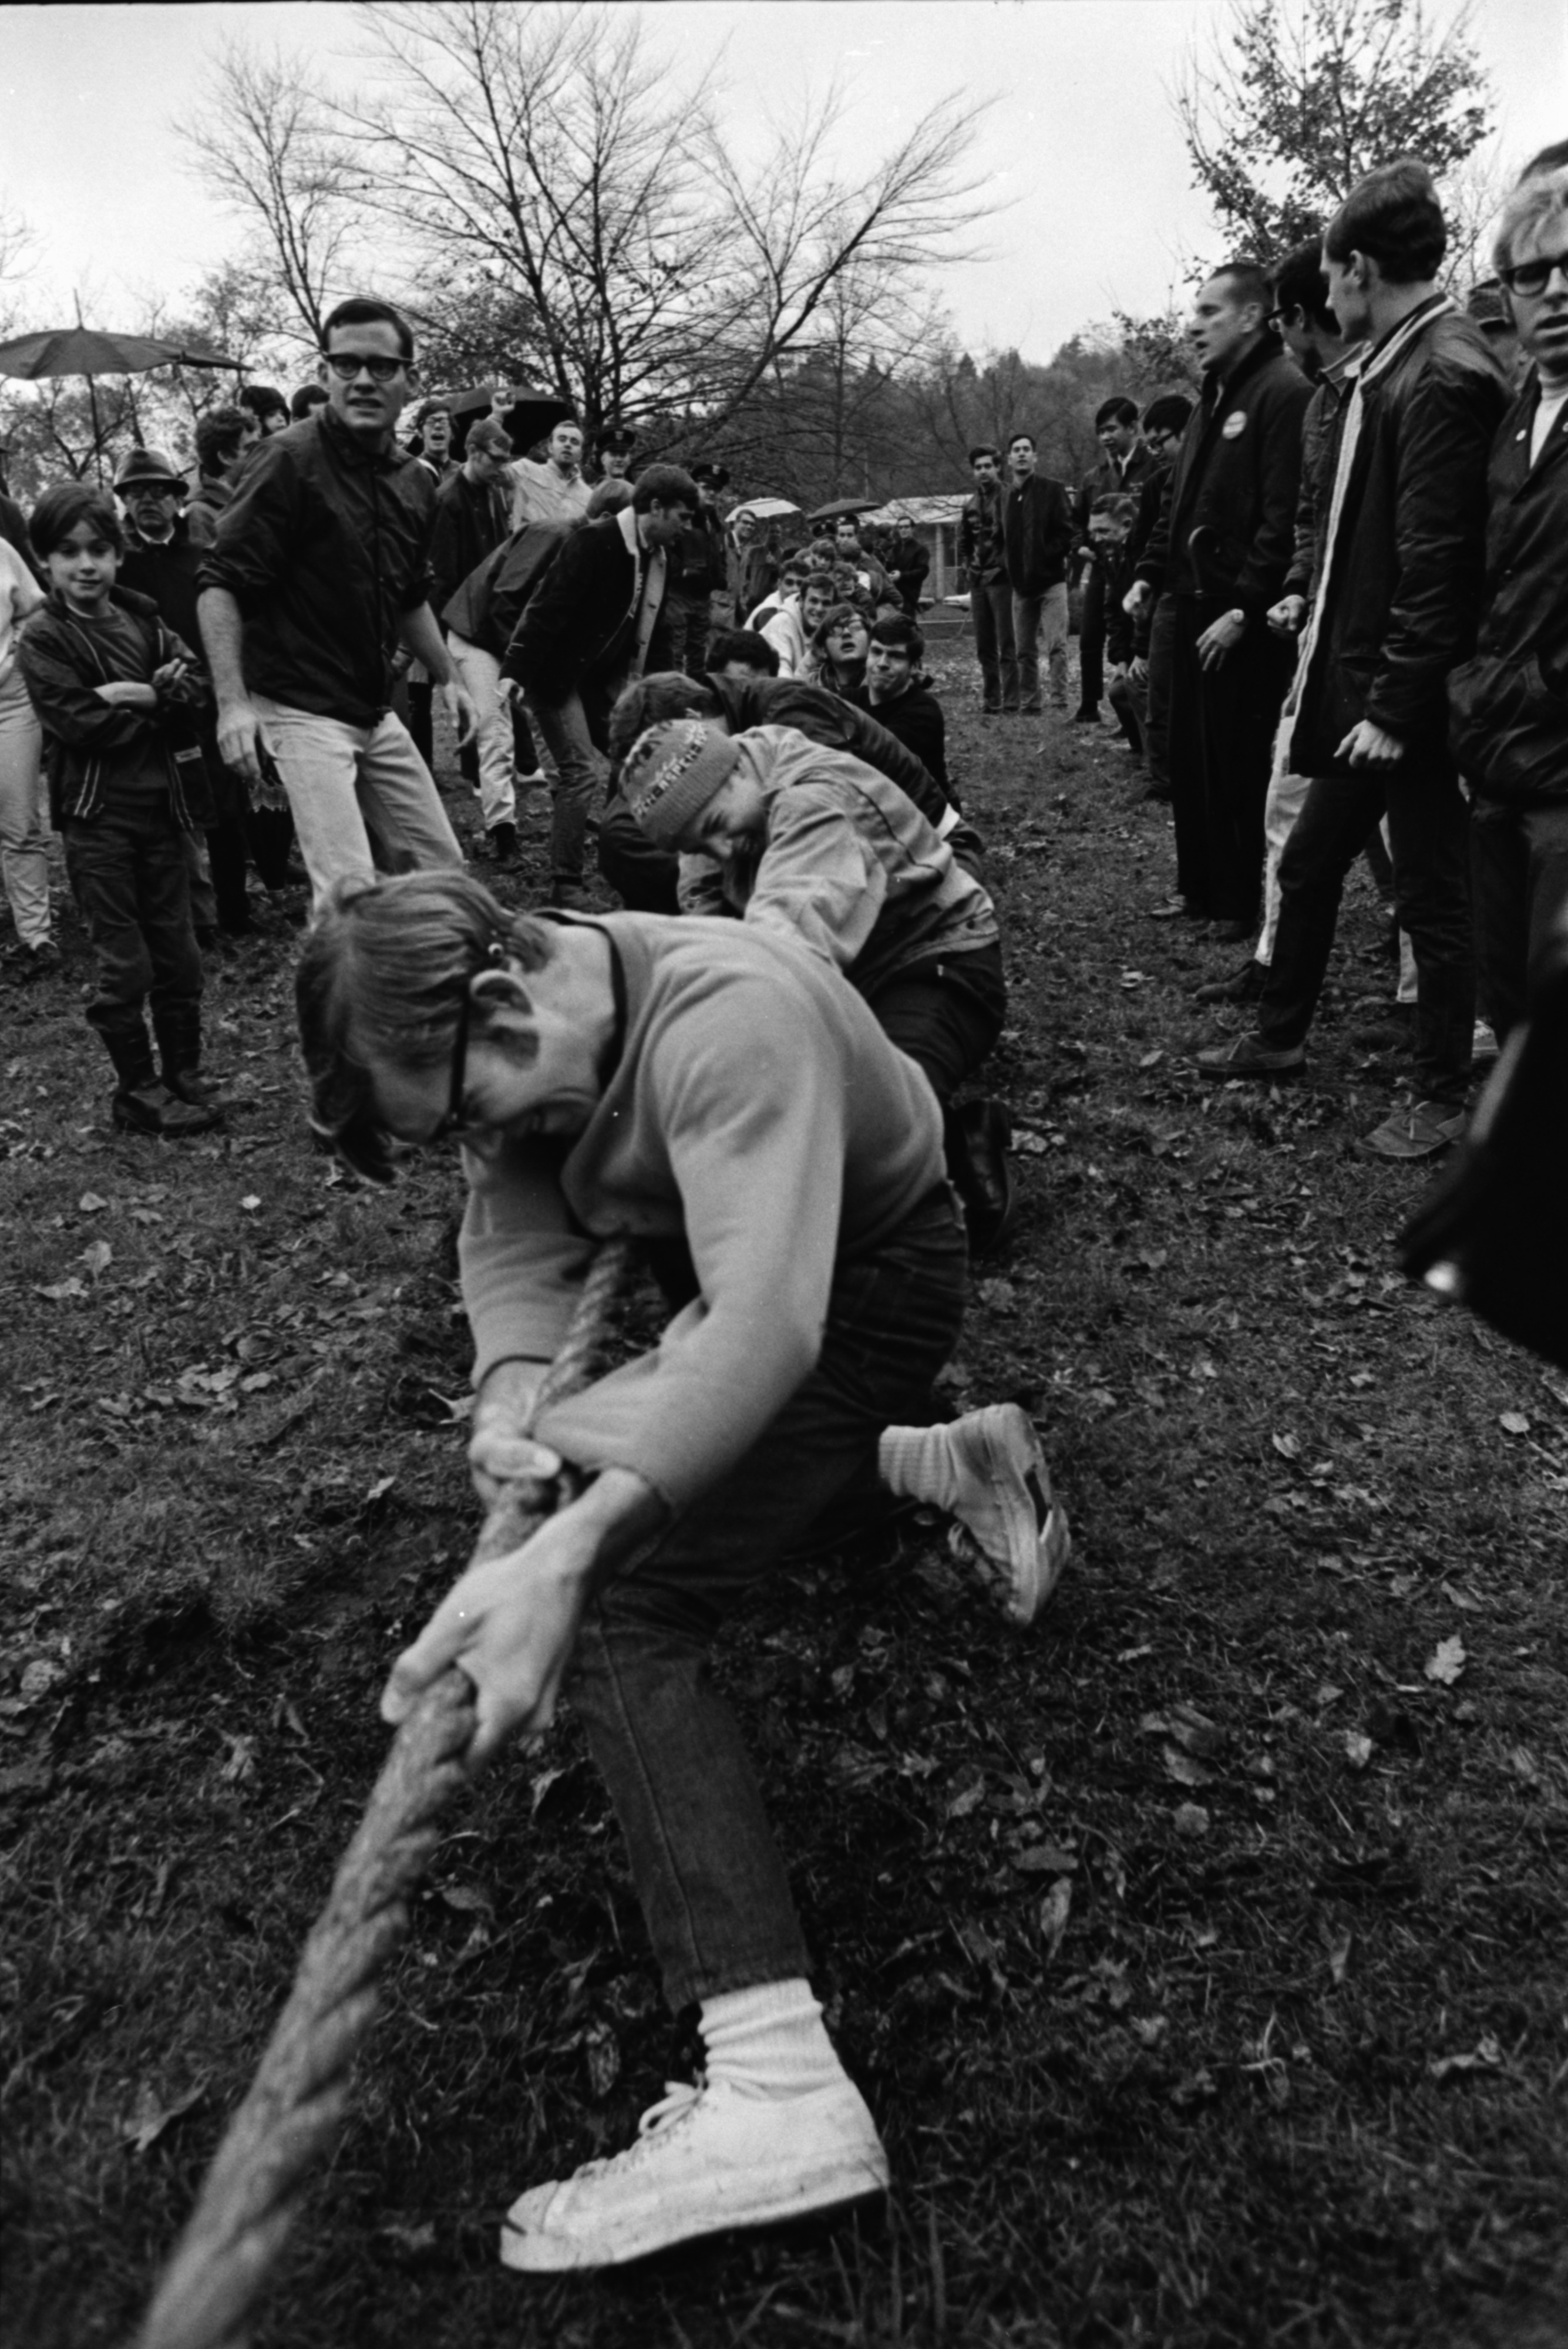 South Quad Competes in the University of Michigan Homecoming Tug of War, November 1969 image